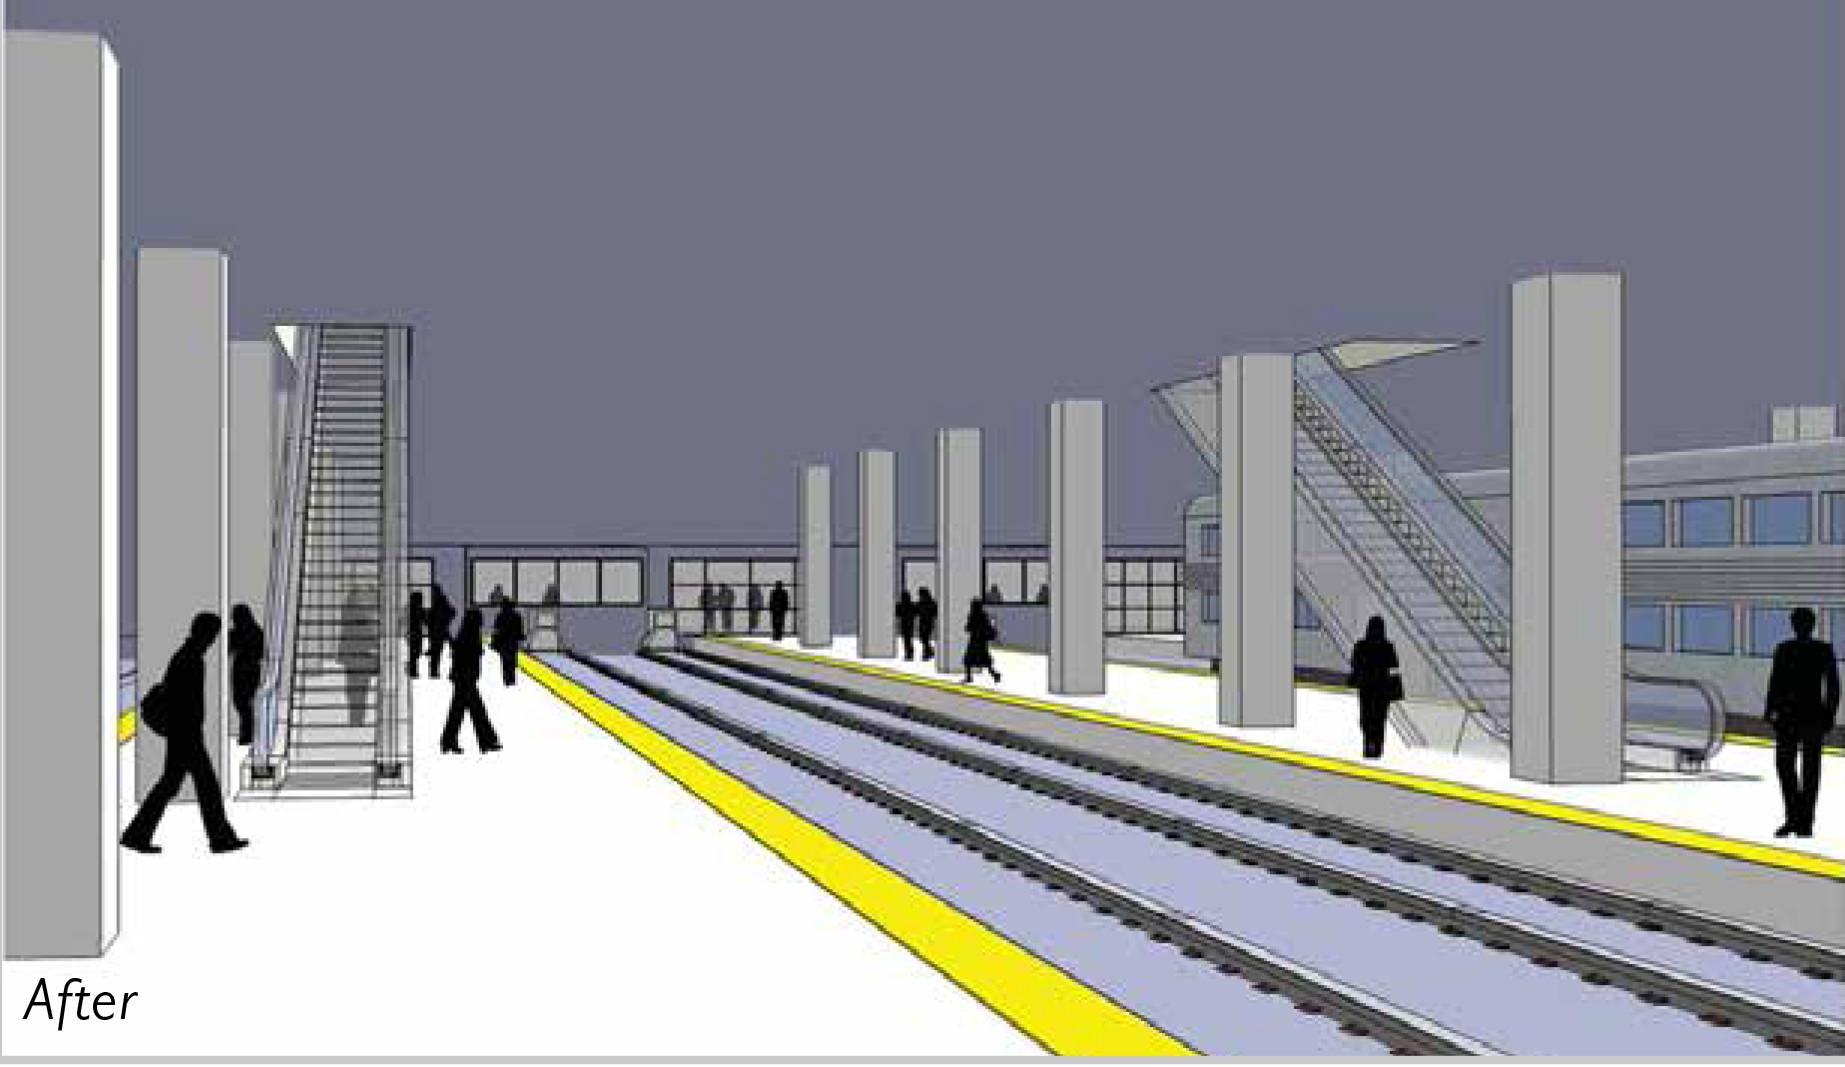 Pyke: Tired of Union Station? Improvements are coming